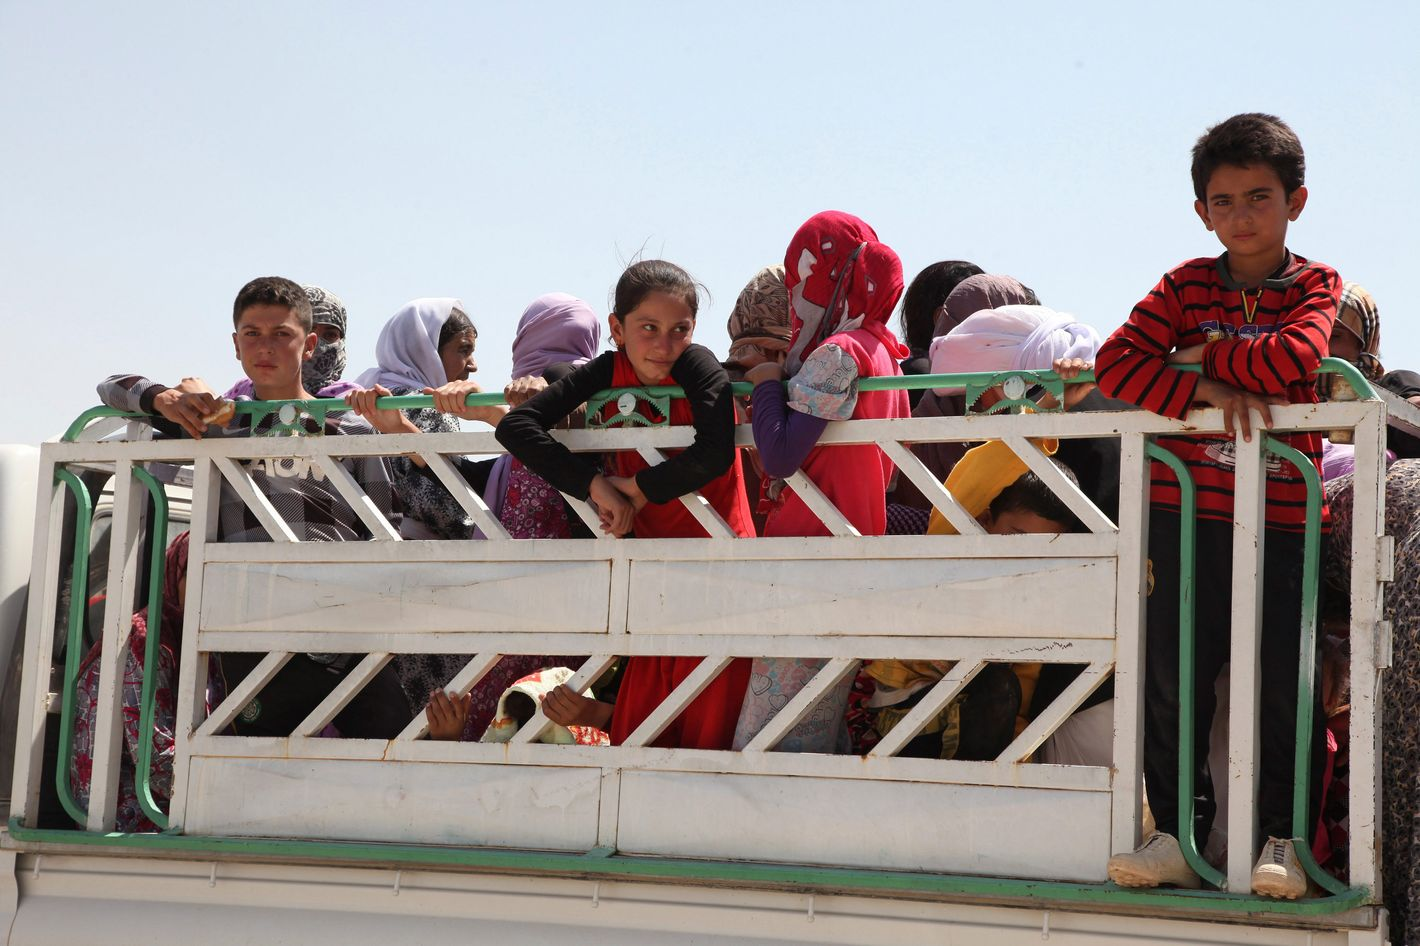 04 Aug 2014, Dohuk, Iraq --- Displaced families from the minority Yazidi sect, fleeing the violence in the Iraqi town of Sinjarl west of Mosul, arrive at Dohuk province, August 4, 2014. Iraq's Prime Minister Nuri al-Maliki ordered his air force for the first time to back Kurdish forces against Islamic State fighters after the Sunni militants made another dramatic push through the north, state television reported on Monday. REUTERS/Ari Jala (IRAQ - Tags: CIVIL UNREST POLITICS) --- Image by ? STRINGER/IRAQ/Reuters/Corbis